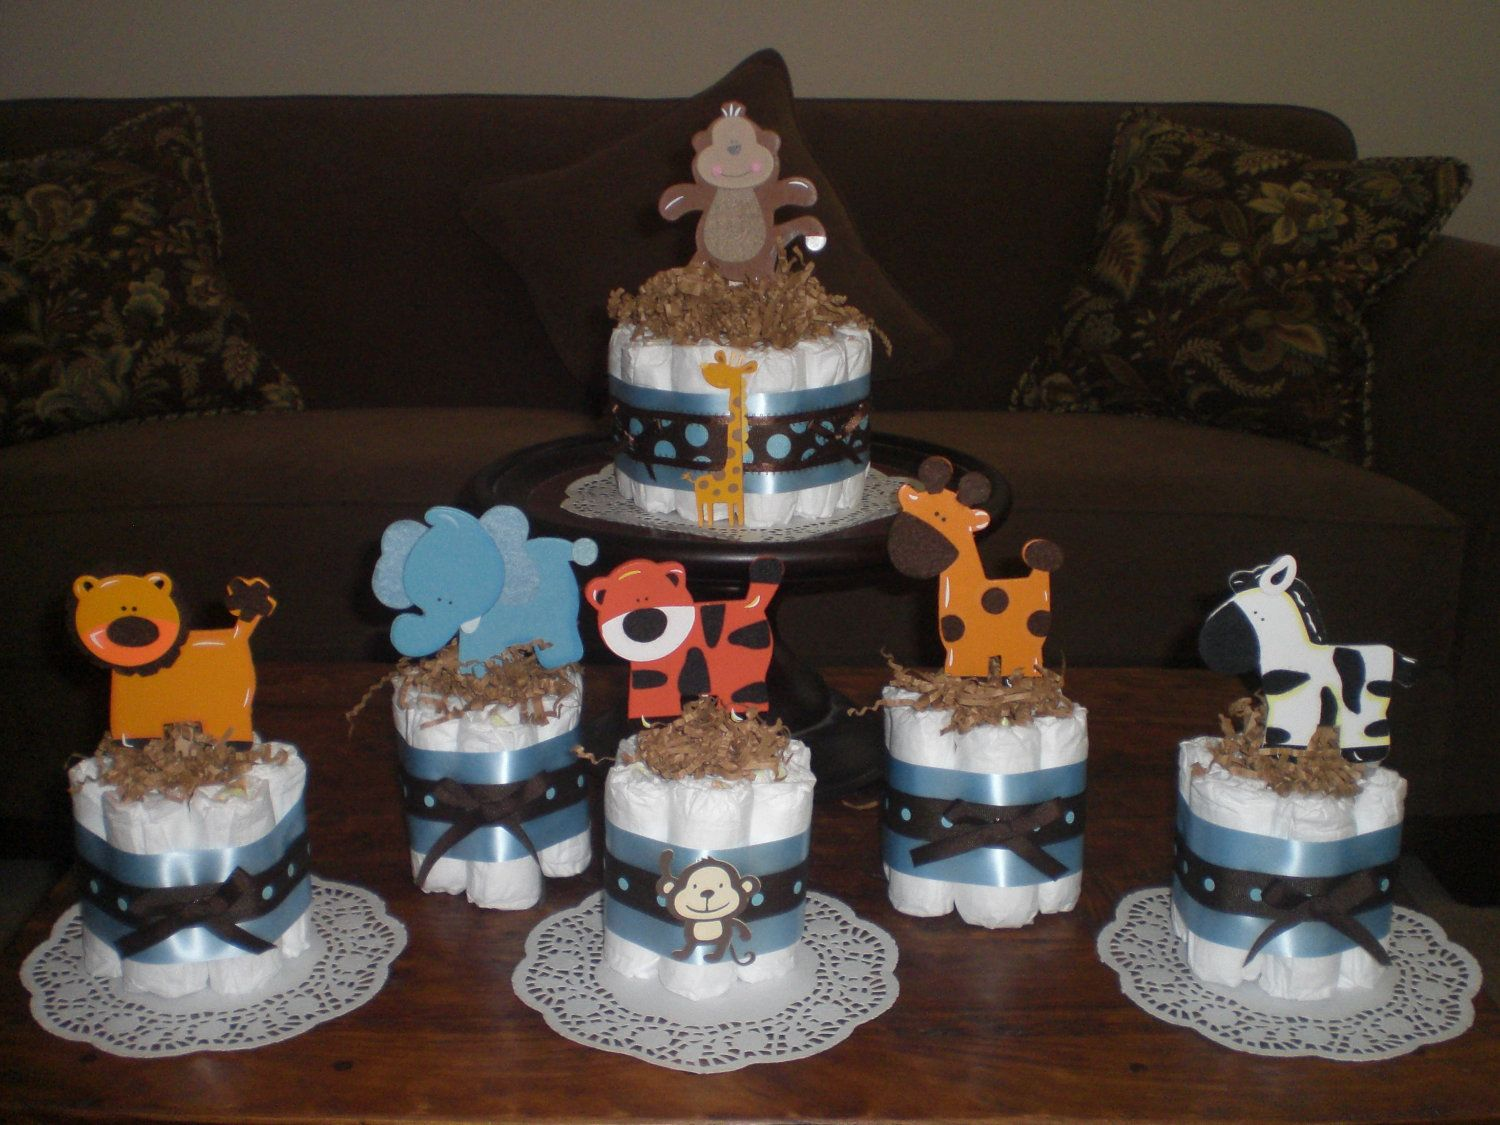 Homemade baby shower table decoration ideas - Safari Jungle And Monkey Diaper Cakes Baby Shower Centerpieces Other